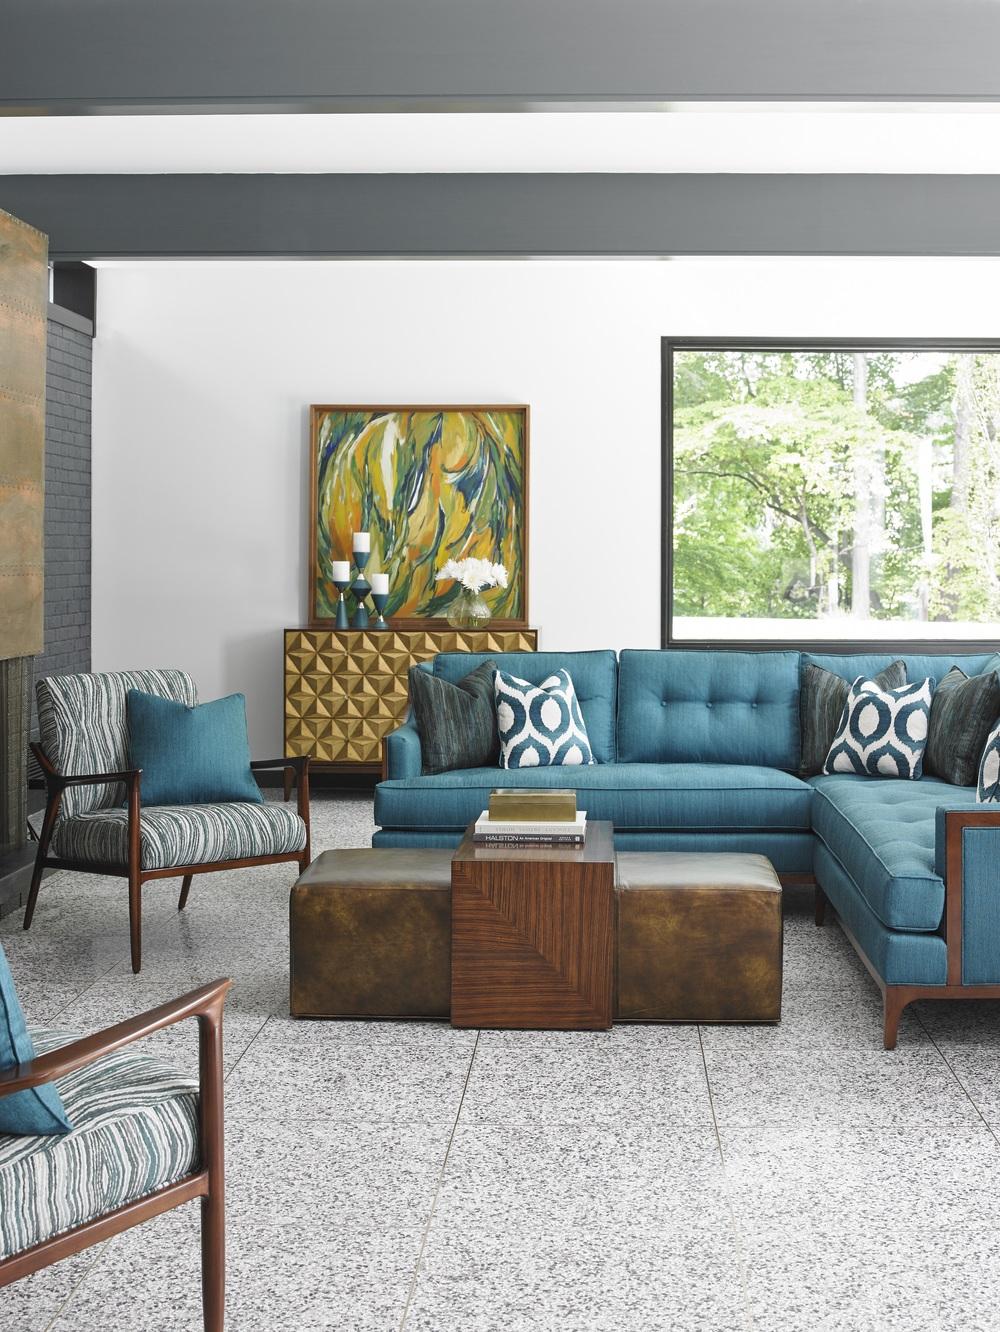 Upholstered seating with clean lines, bright color tones and bold patterns feature geometric and abstract designs. Sleek and comfortable sectional seating is iconic to mid-century styling and is functional for entertaining. From Lexington Home Brand's Take Five Collection. Photo: Courtesy of Lexington Home Brands.